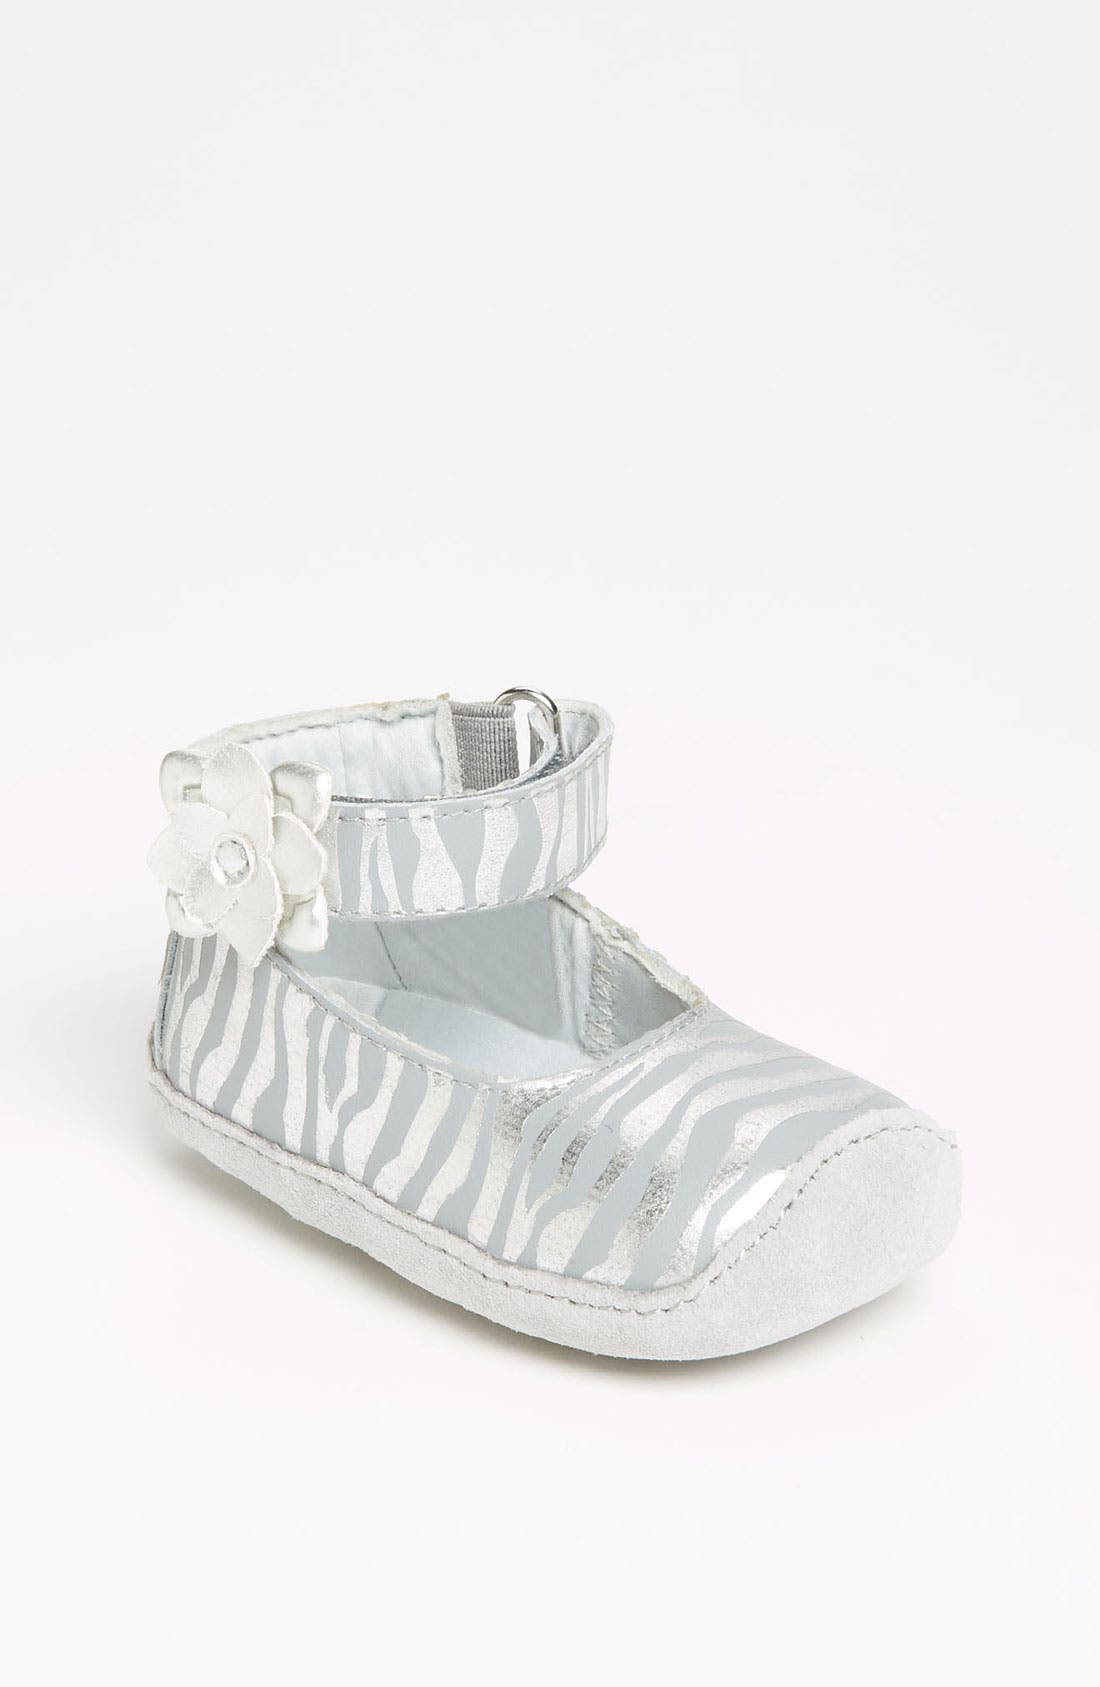 Alternate Image 1 Selected - Stride Rite 'Crawl Pretty - Aggy' Flat (Baby)